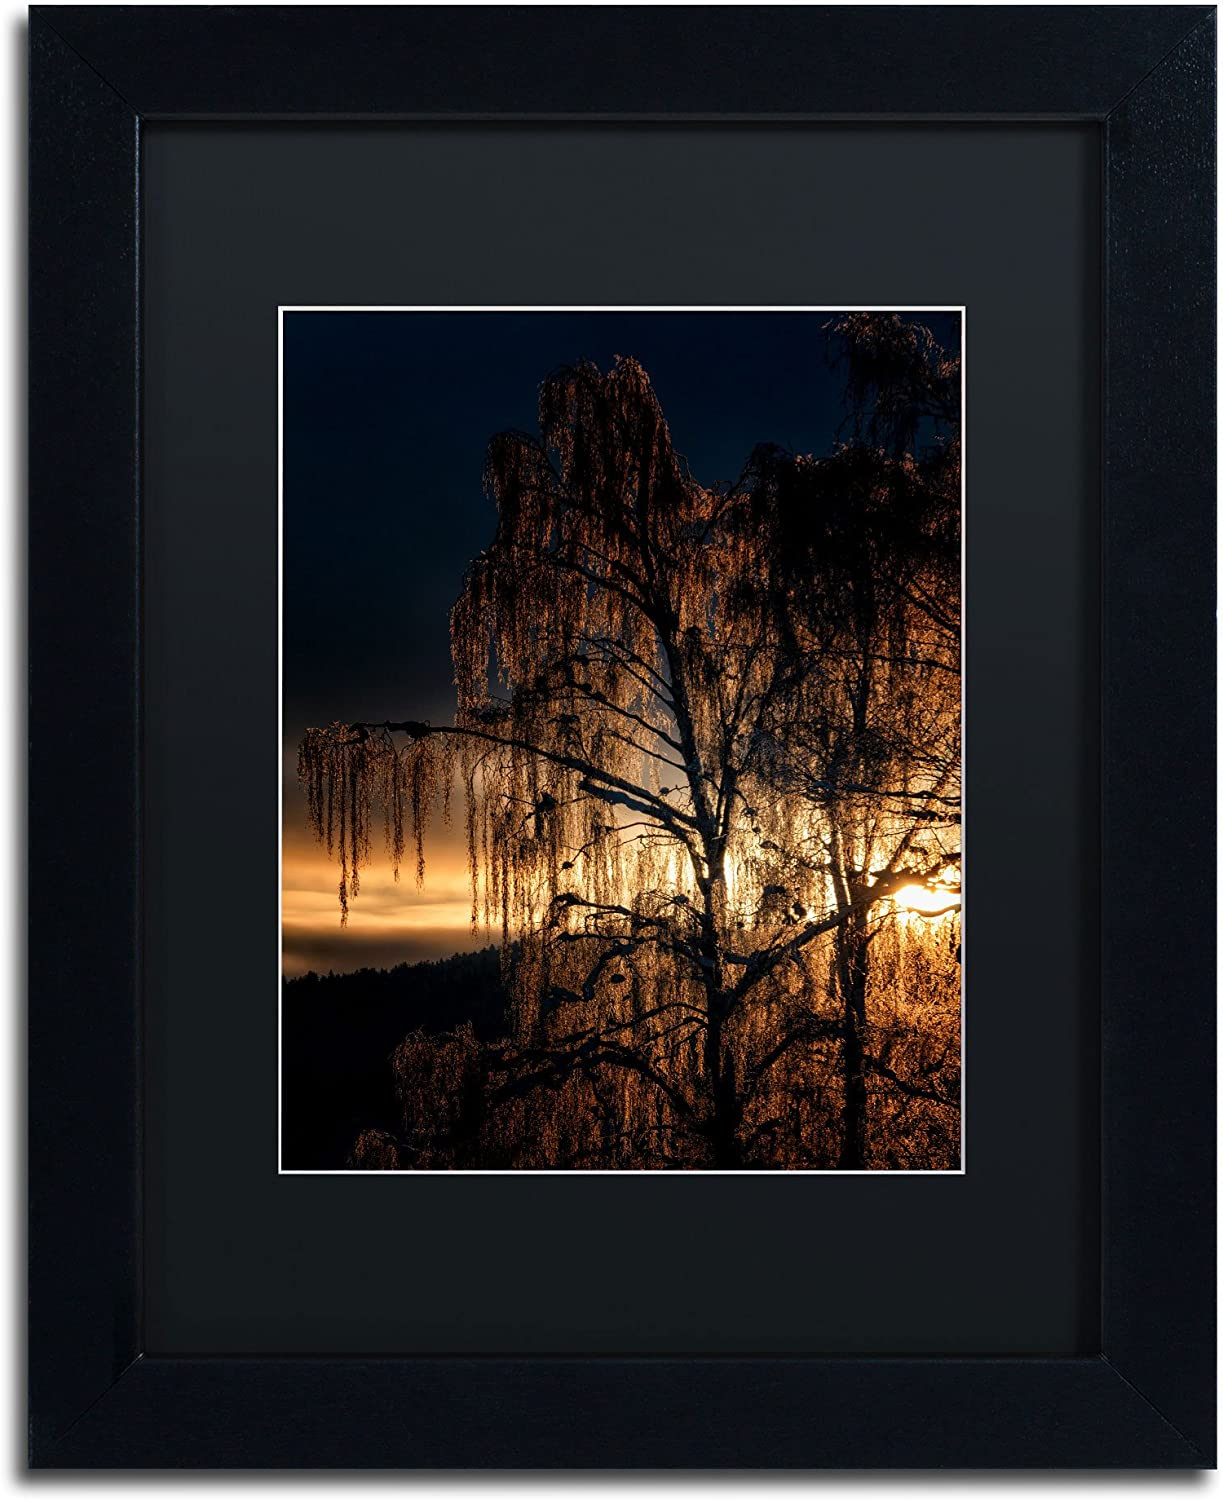 Trademark Fine Art golden Tree Canvas Artwork by Erik Brede, 11 by 14Inch, Black Matte with Black Frame